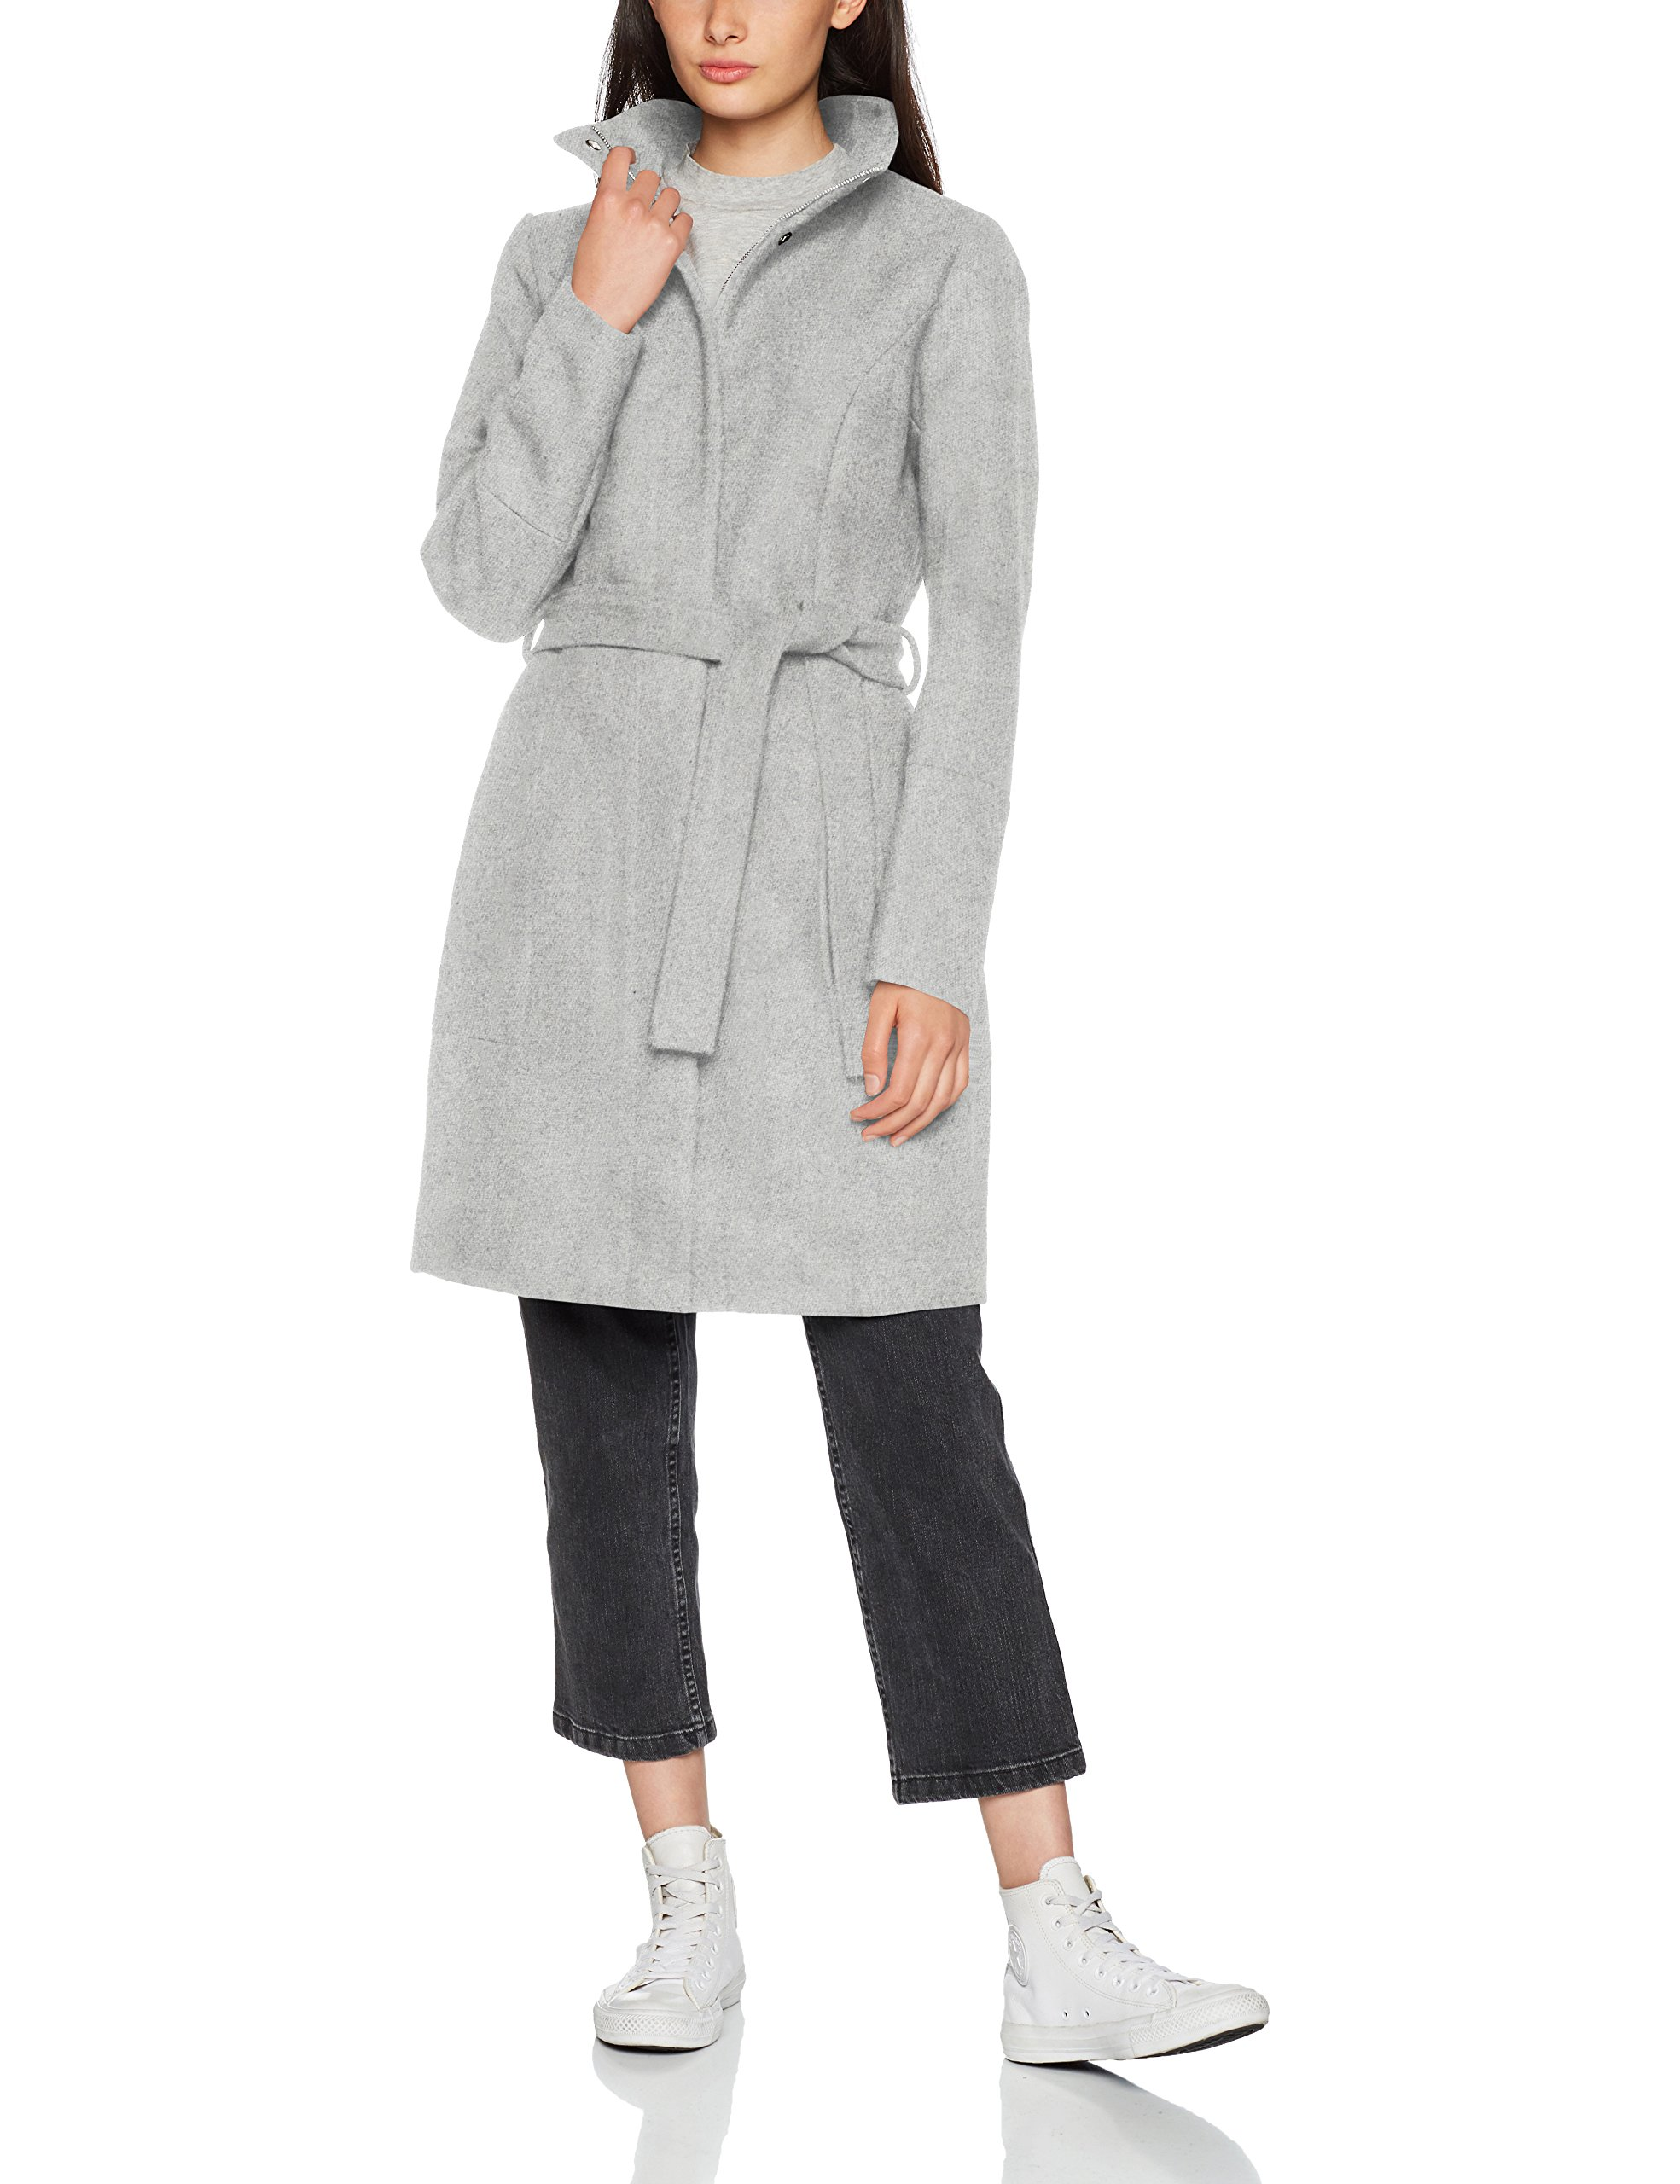 Clothes FabricantX Light noos ManteauGris Grey Vibee Vila Melange42taille Coat Wool largeFemme CxerodBW